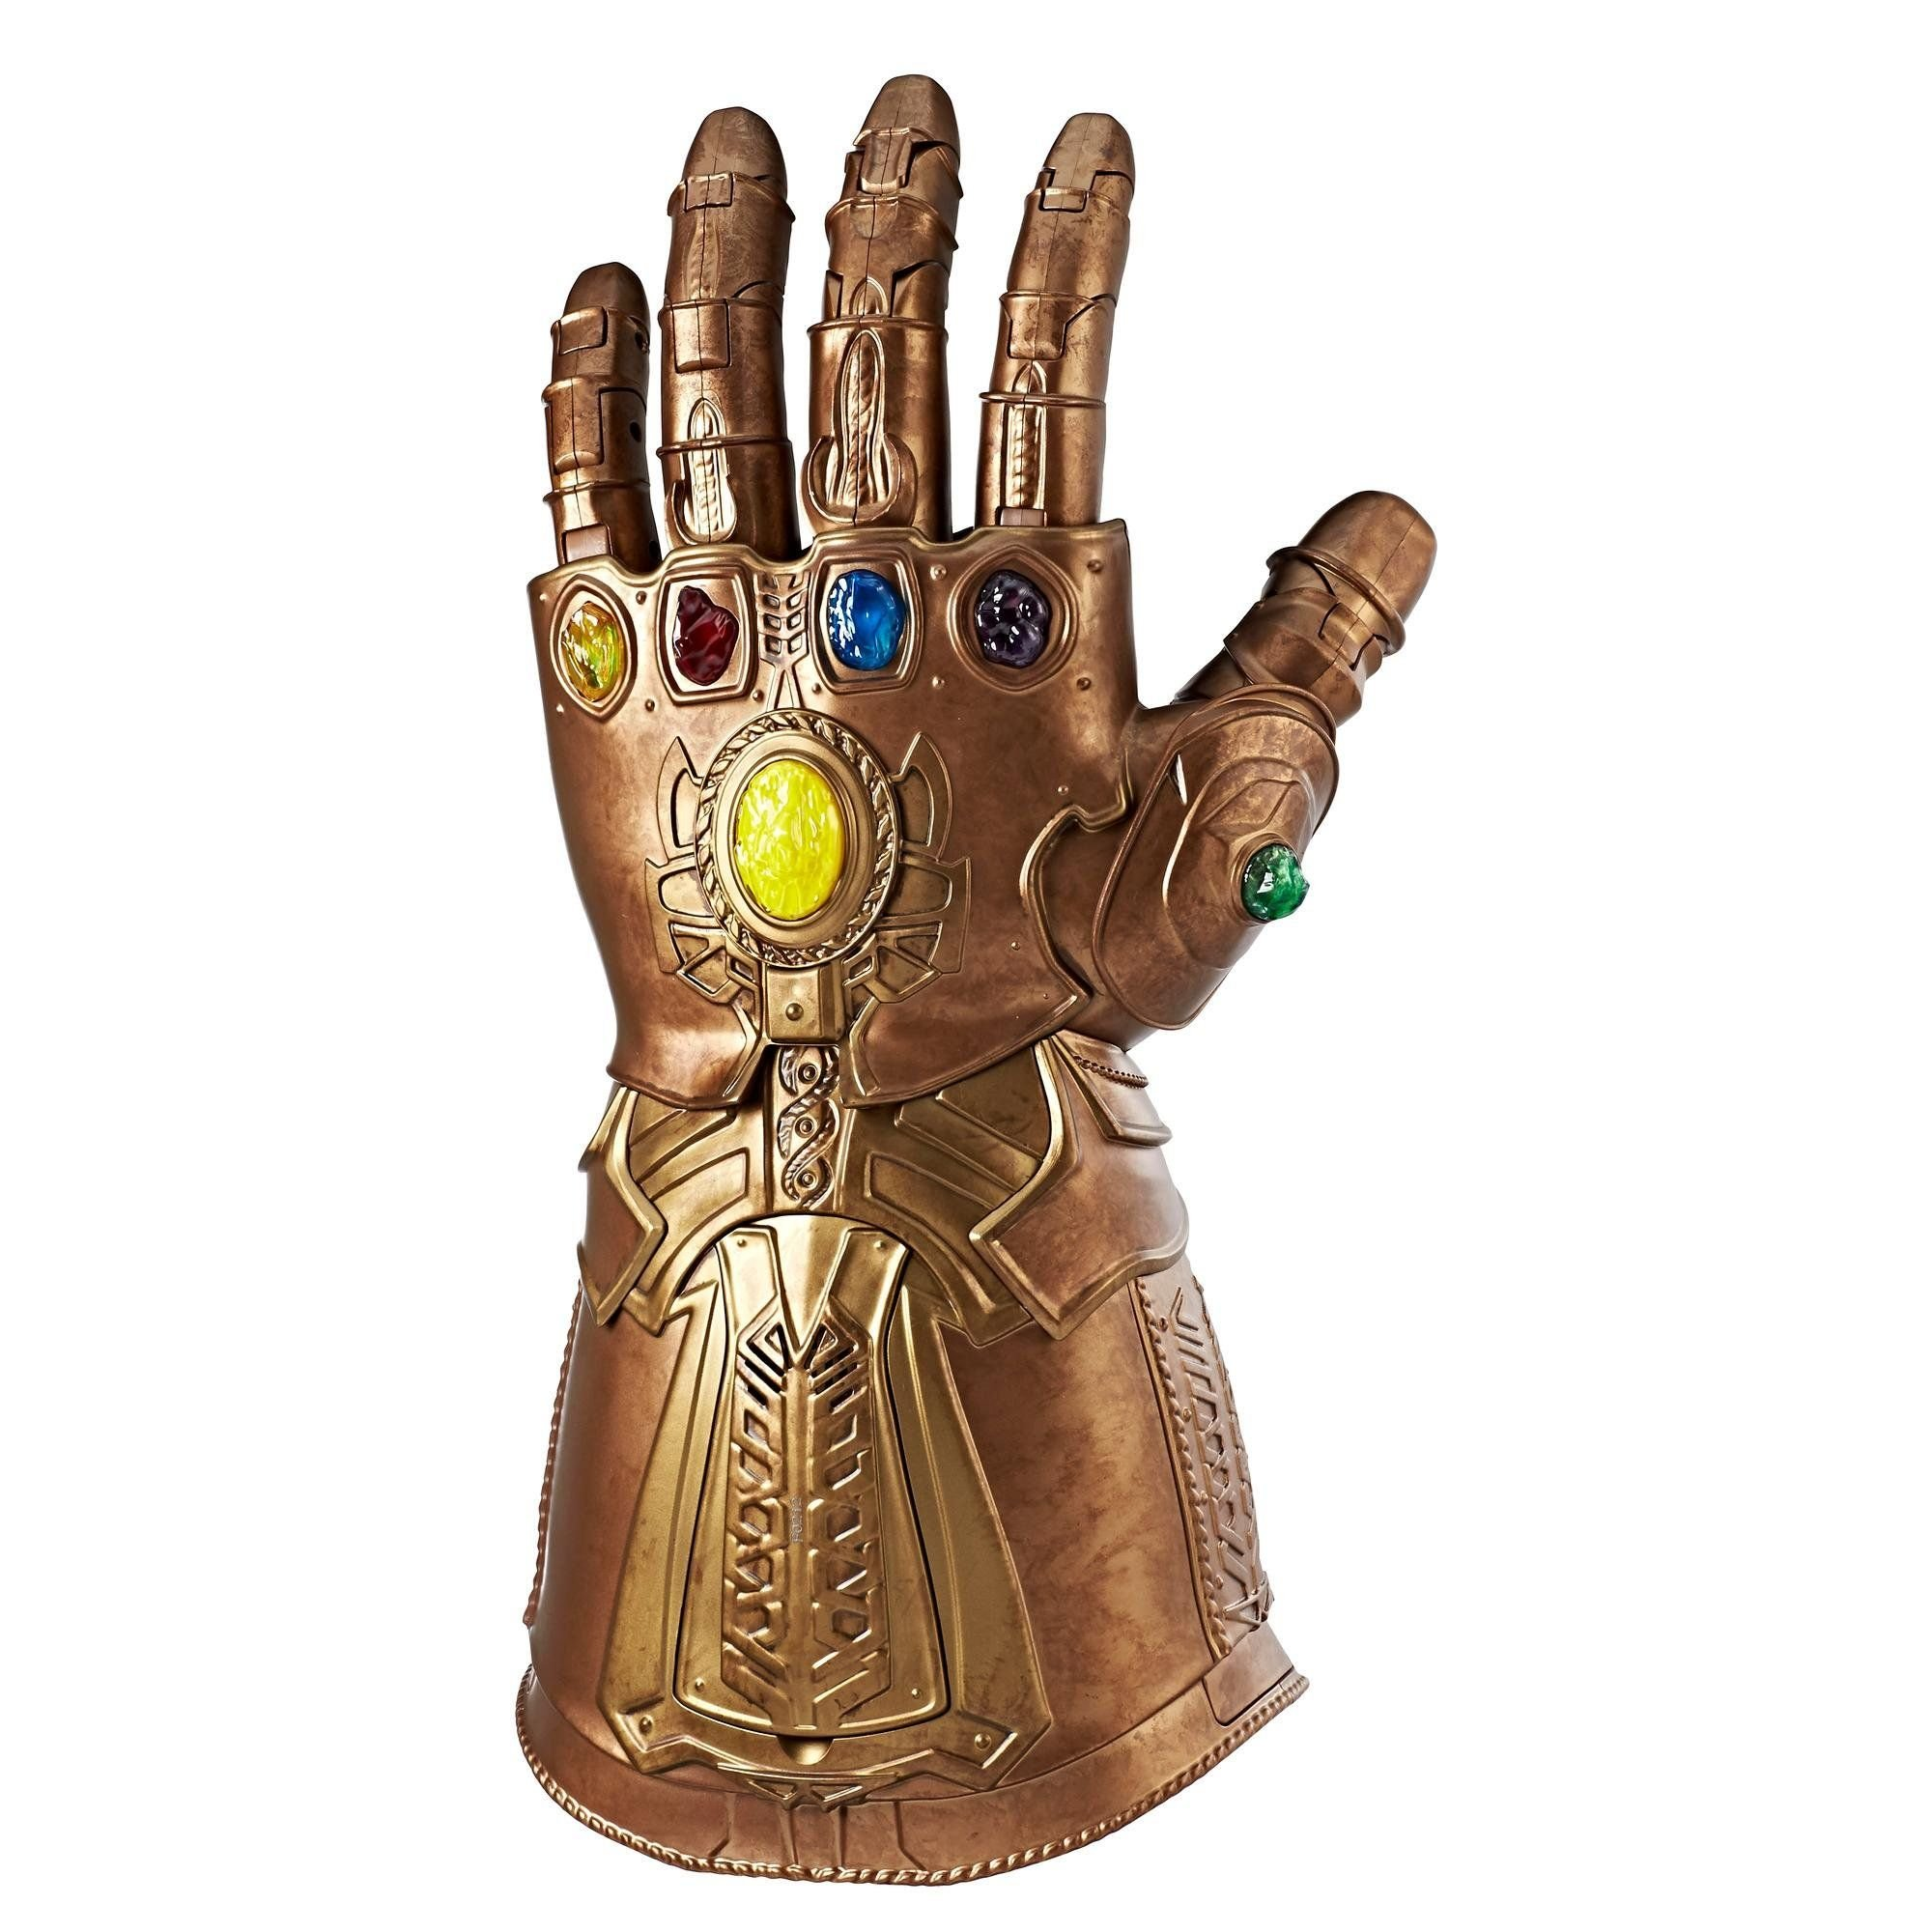 Manopla do infinito clipart picture freeuse library Thanos Infinity Gauntlet Funko Pop - J Kosong t picture freeuse library